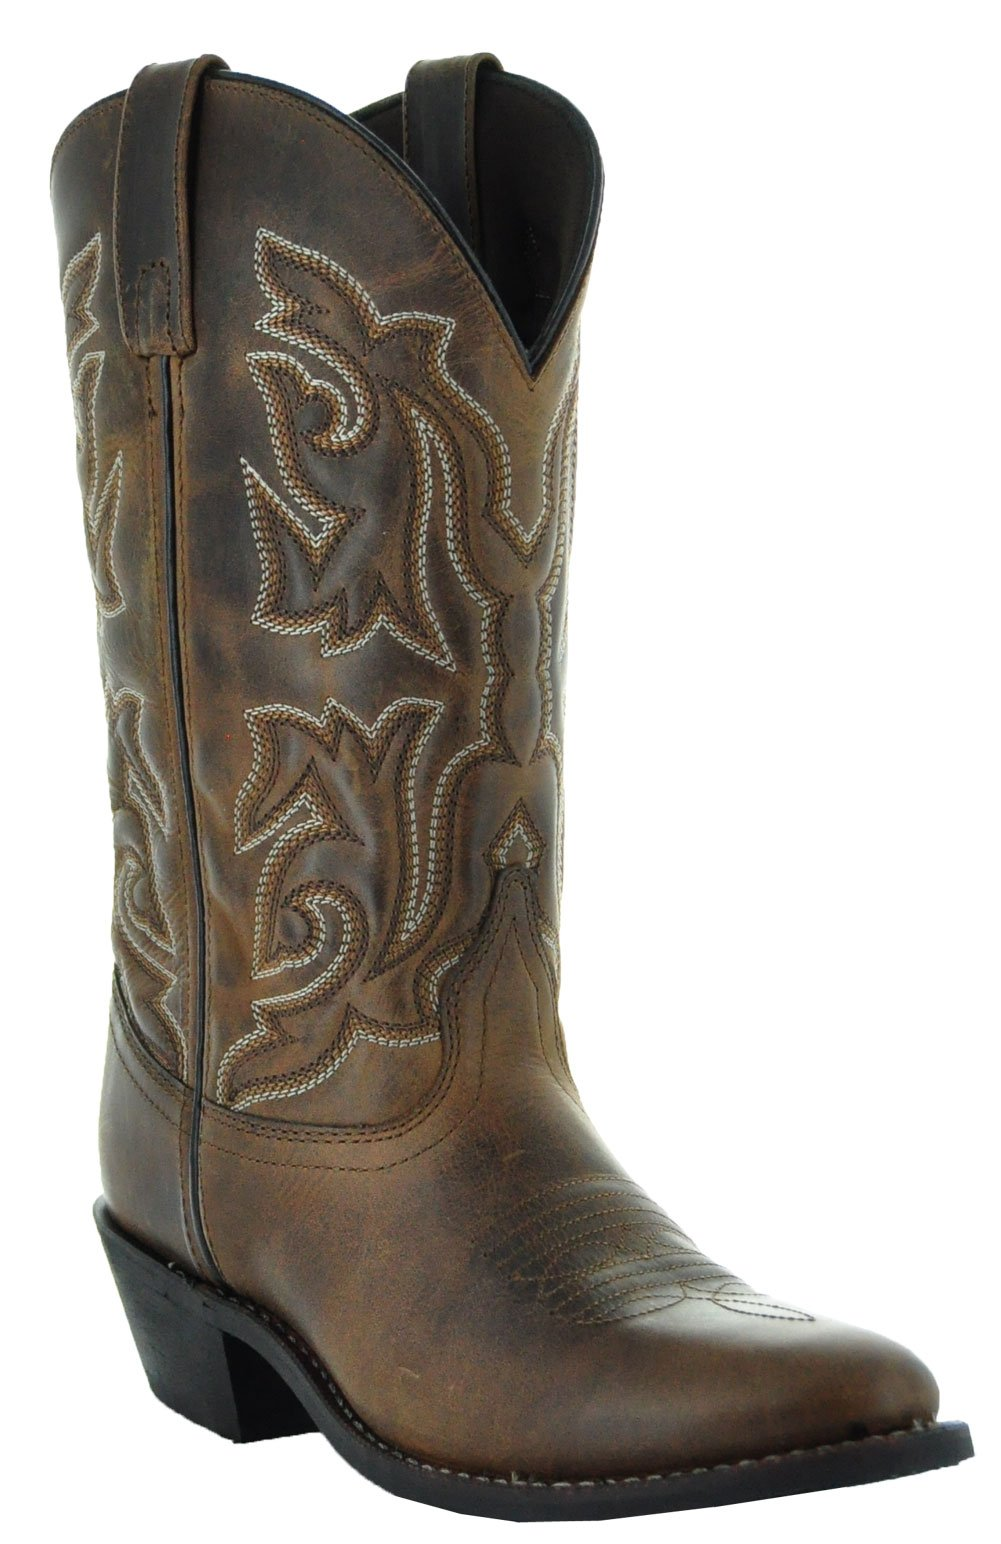 Soto Boots Monterrey Women's Cowgirl Boots by M3001 (8, Brown)